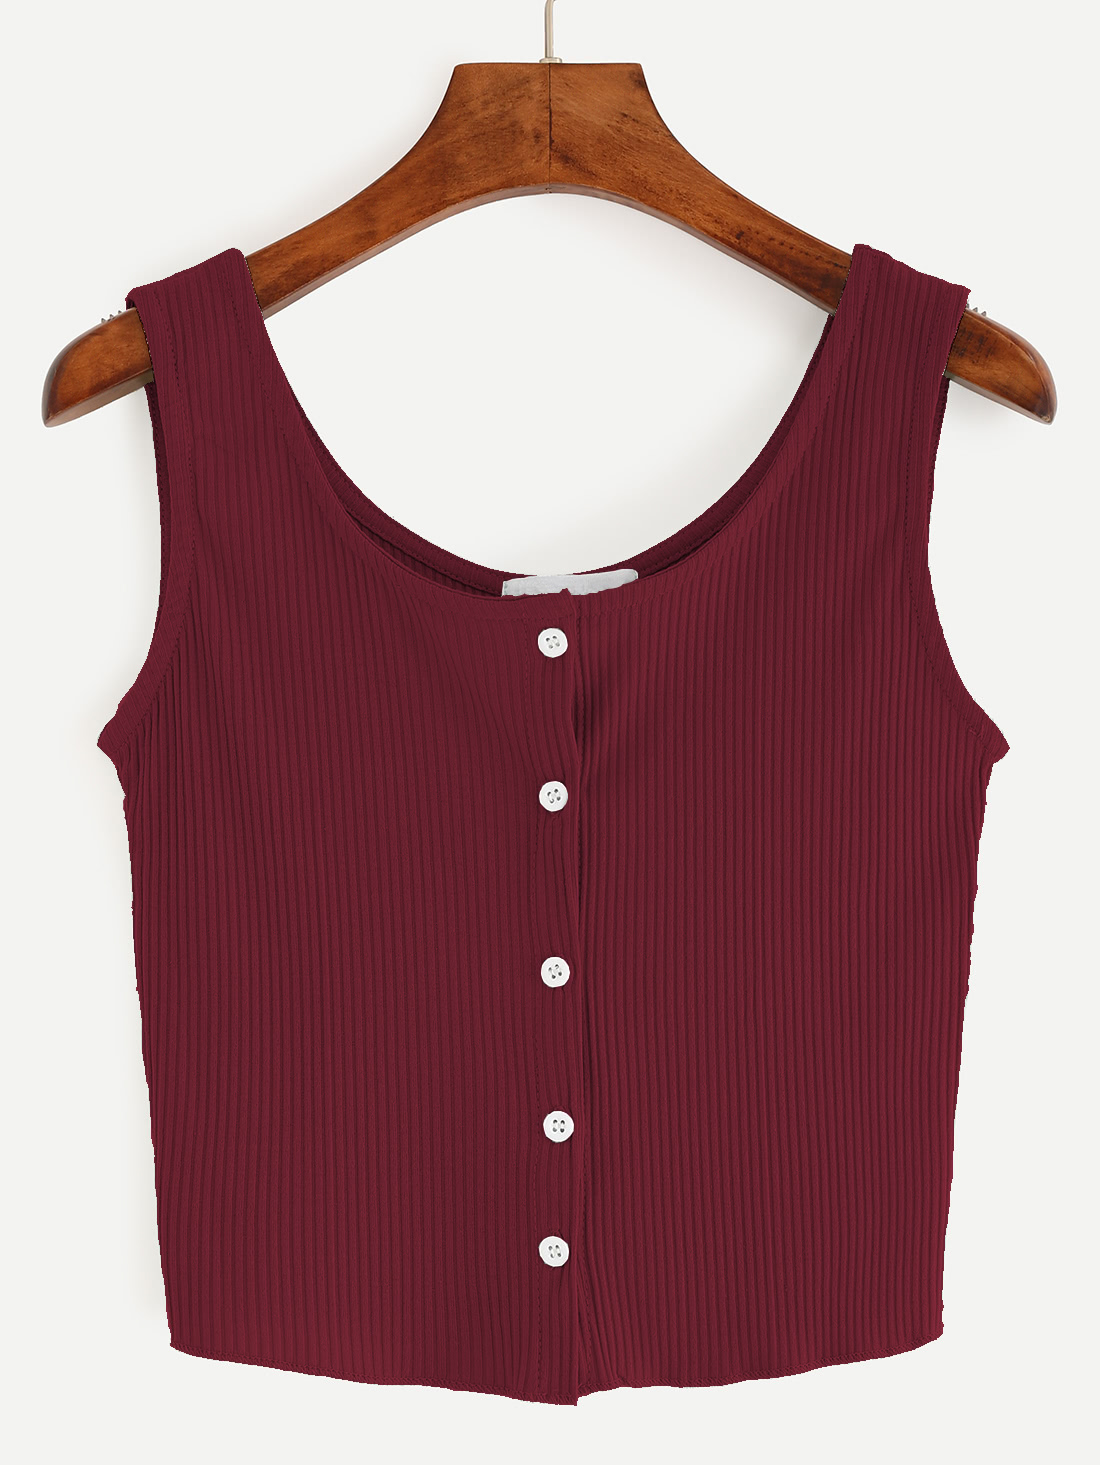 Burgundy Button Front Ribbed Tank Top vest160705026